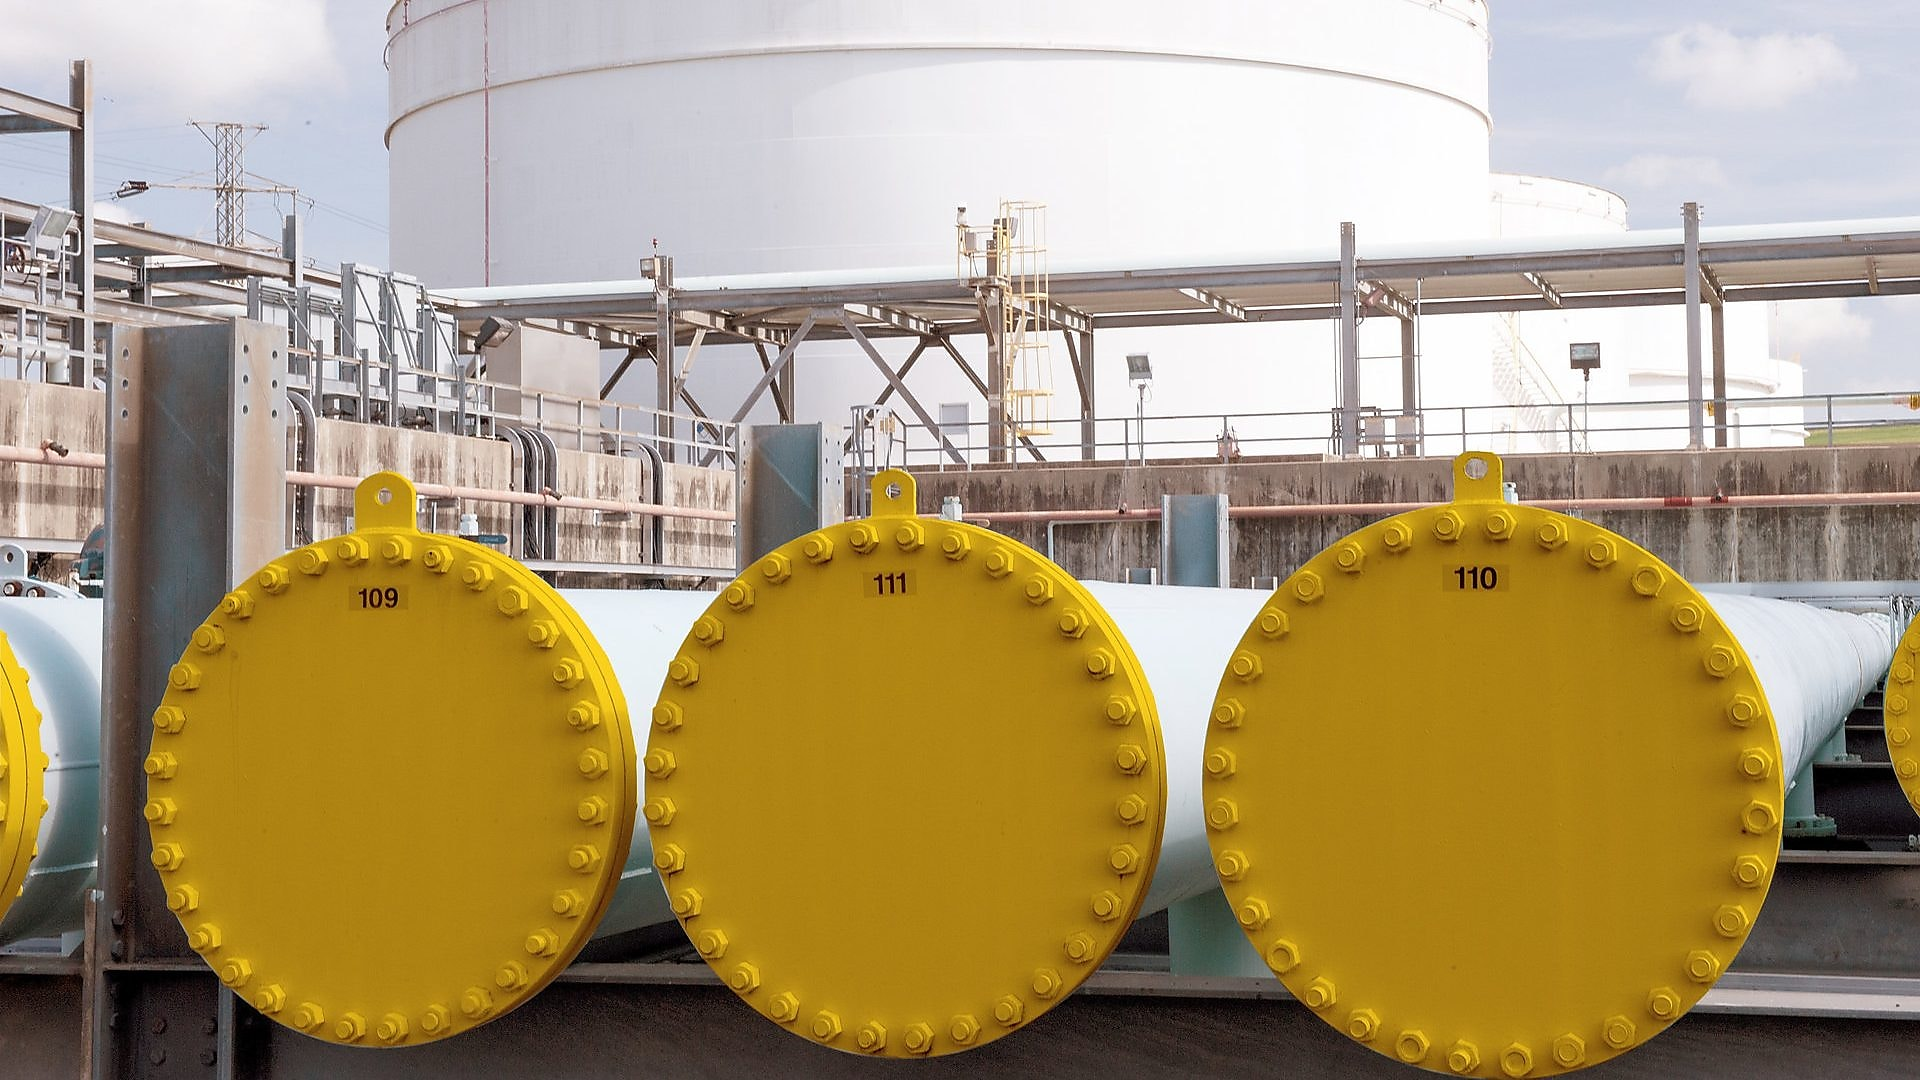 About Shell Pipeline